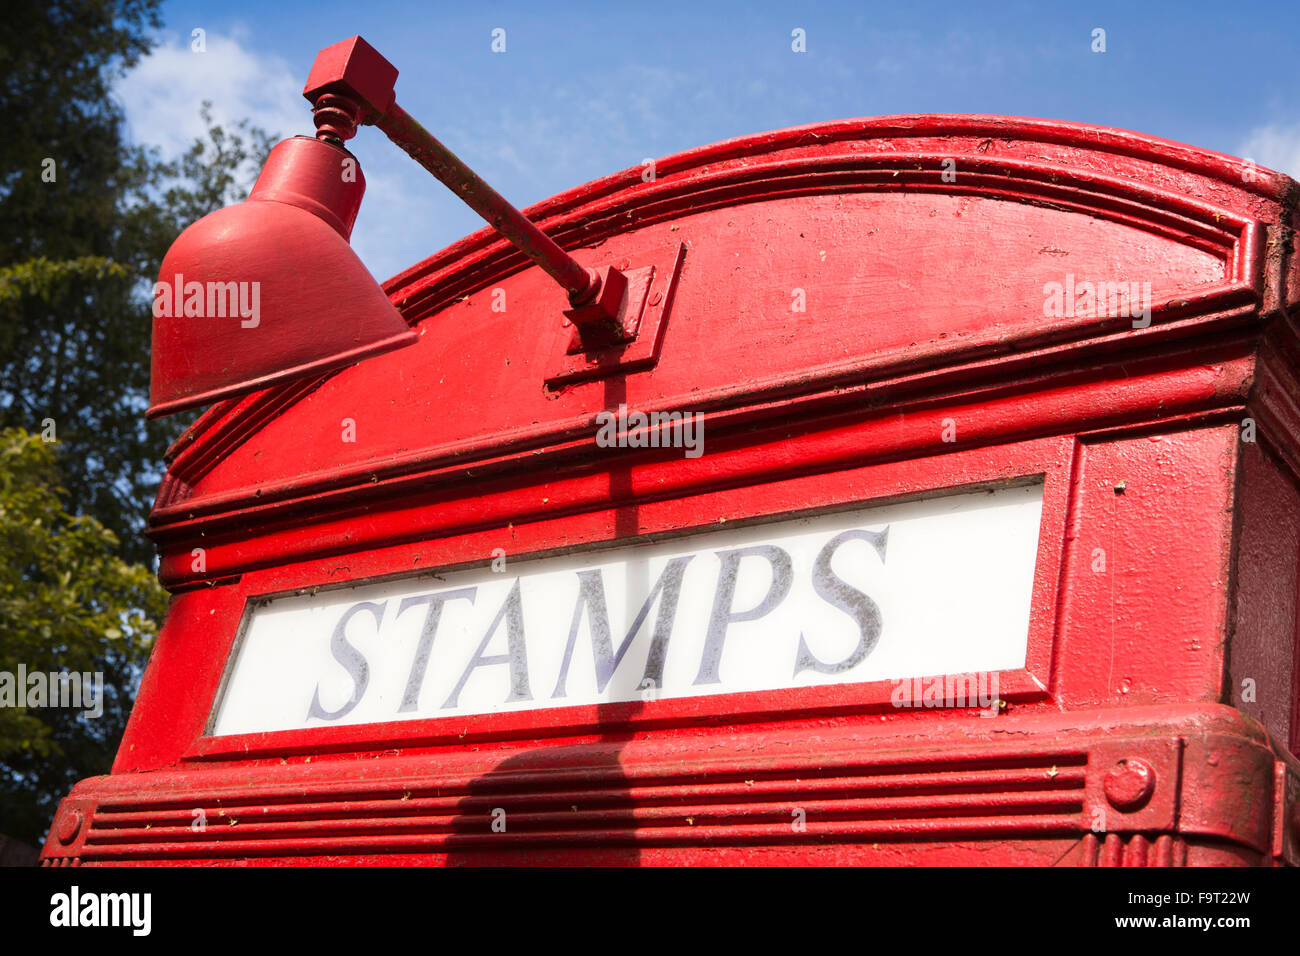 UK, England, Worcestershire, Bromsgrove, Avoncroft Museum, National Telephone Kiosk Collection, Stamps sign of 1927 - Stock Image